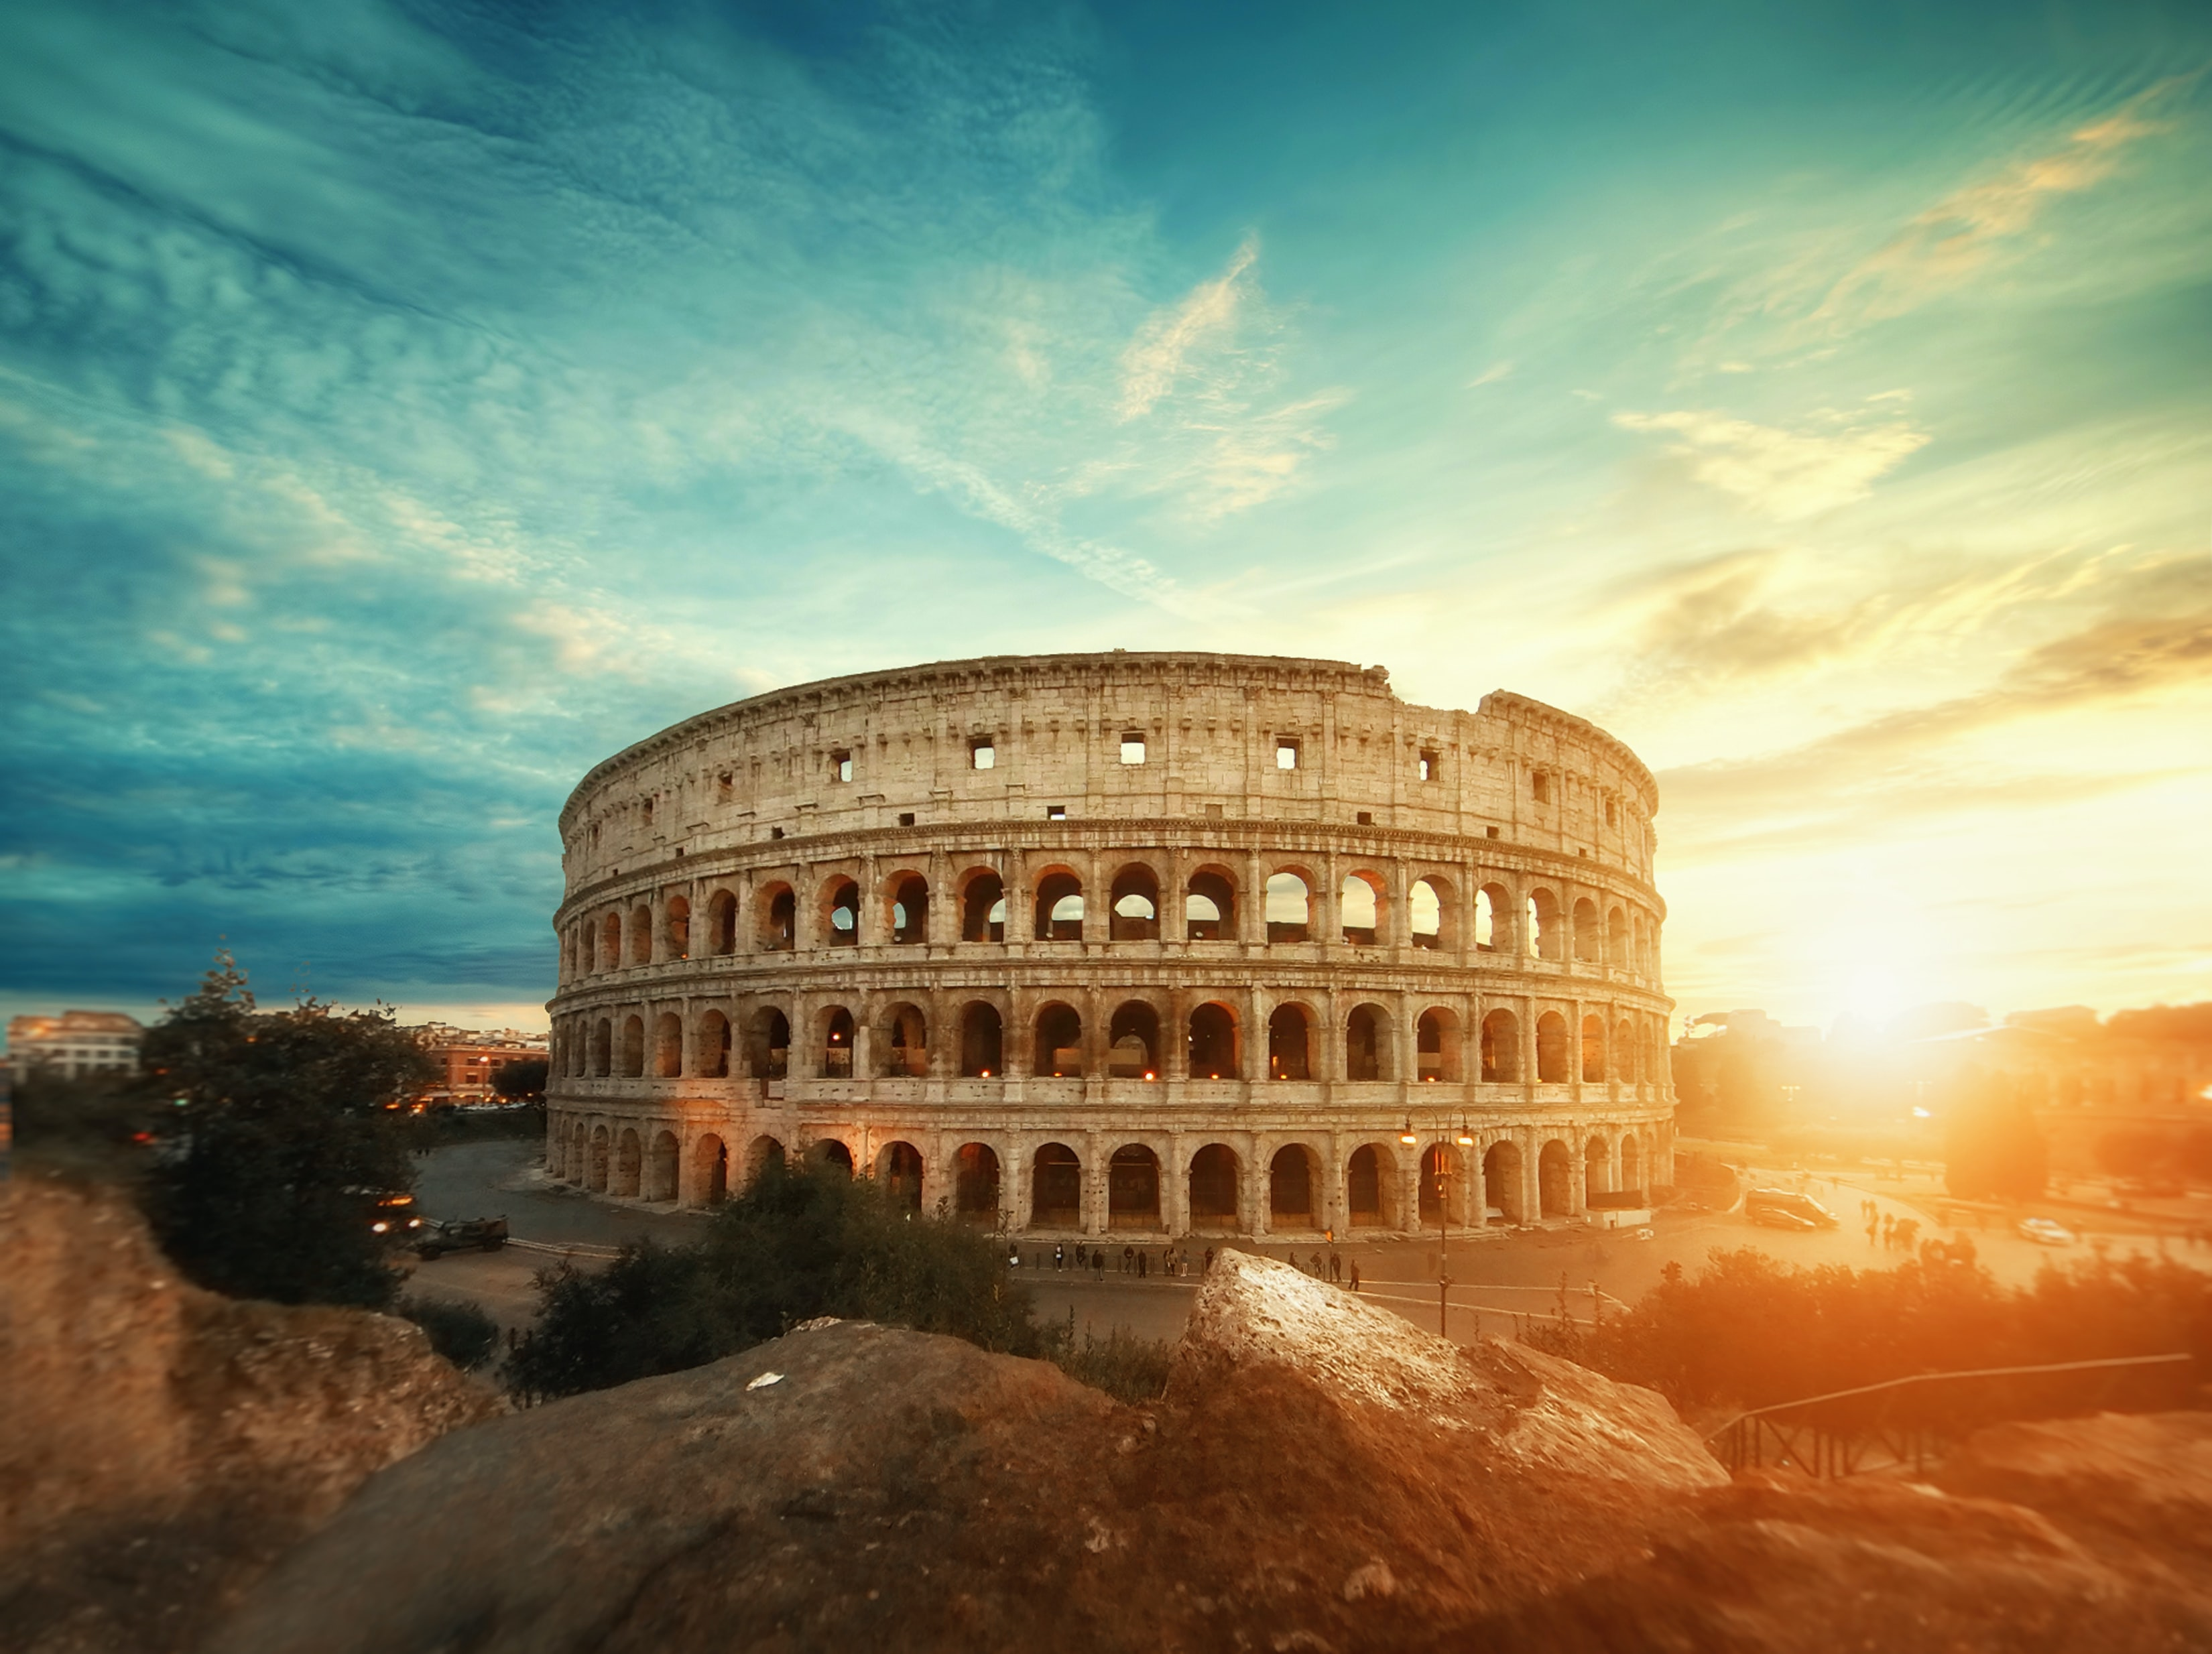 Roman Colosseum, Italy under clear sky during golden hour